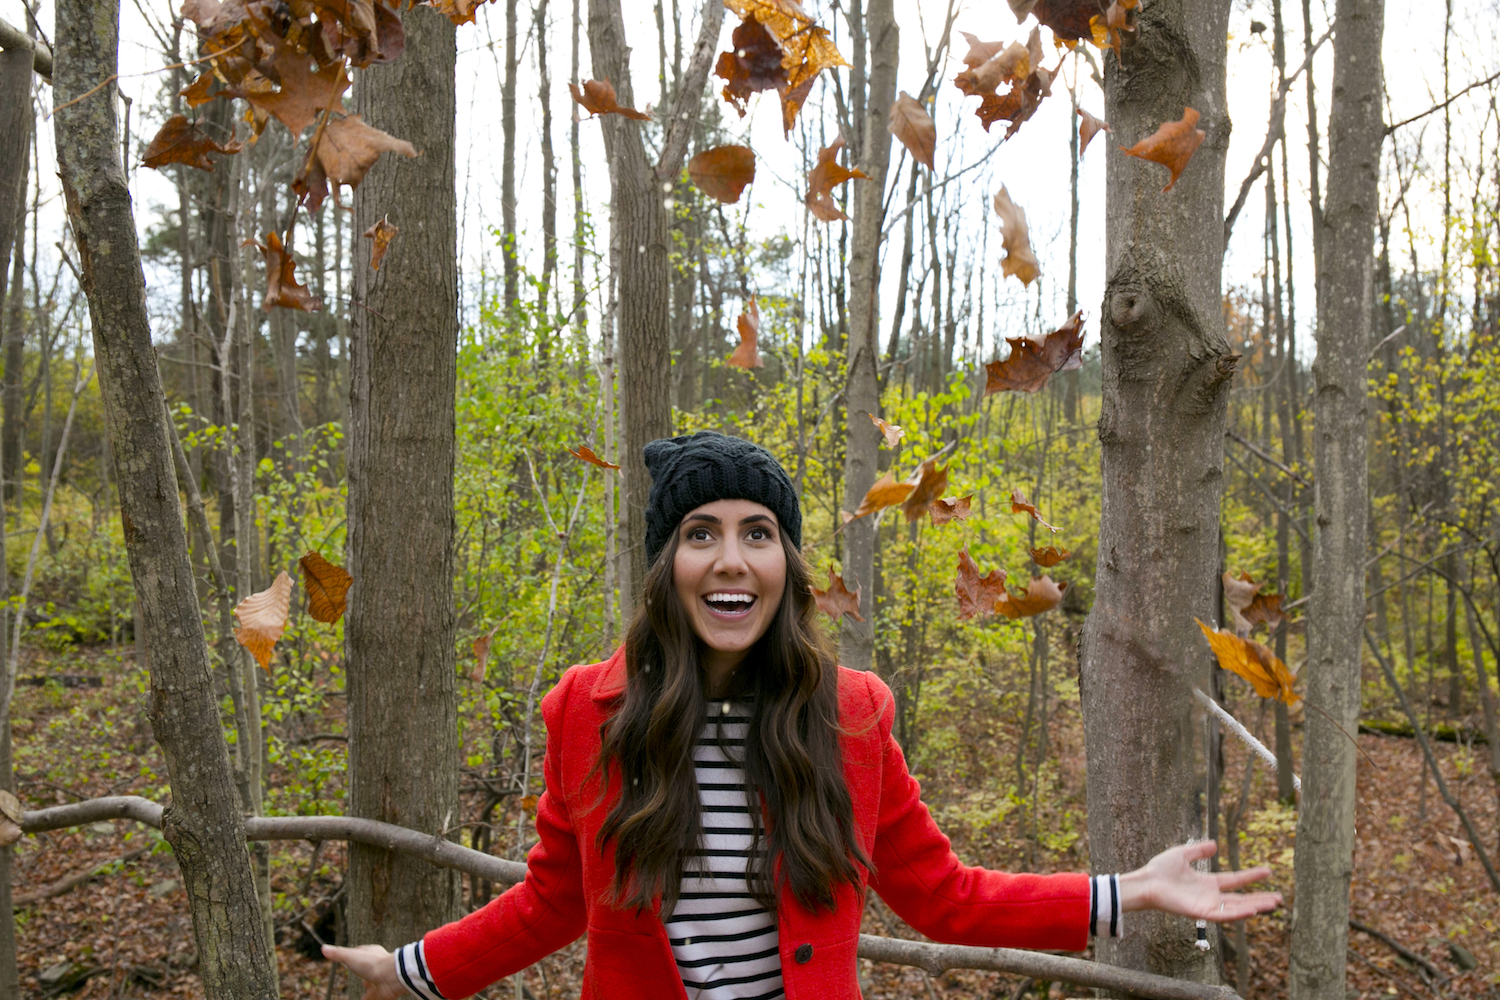 Courtney Red Coat Leaves